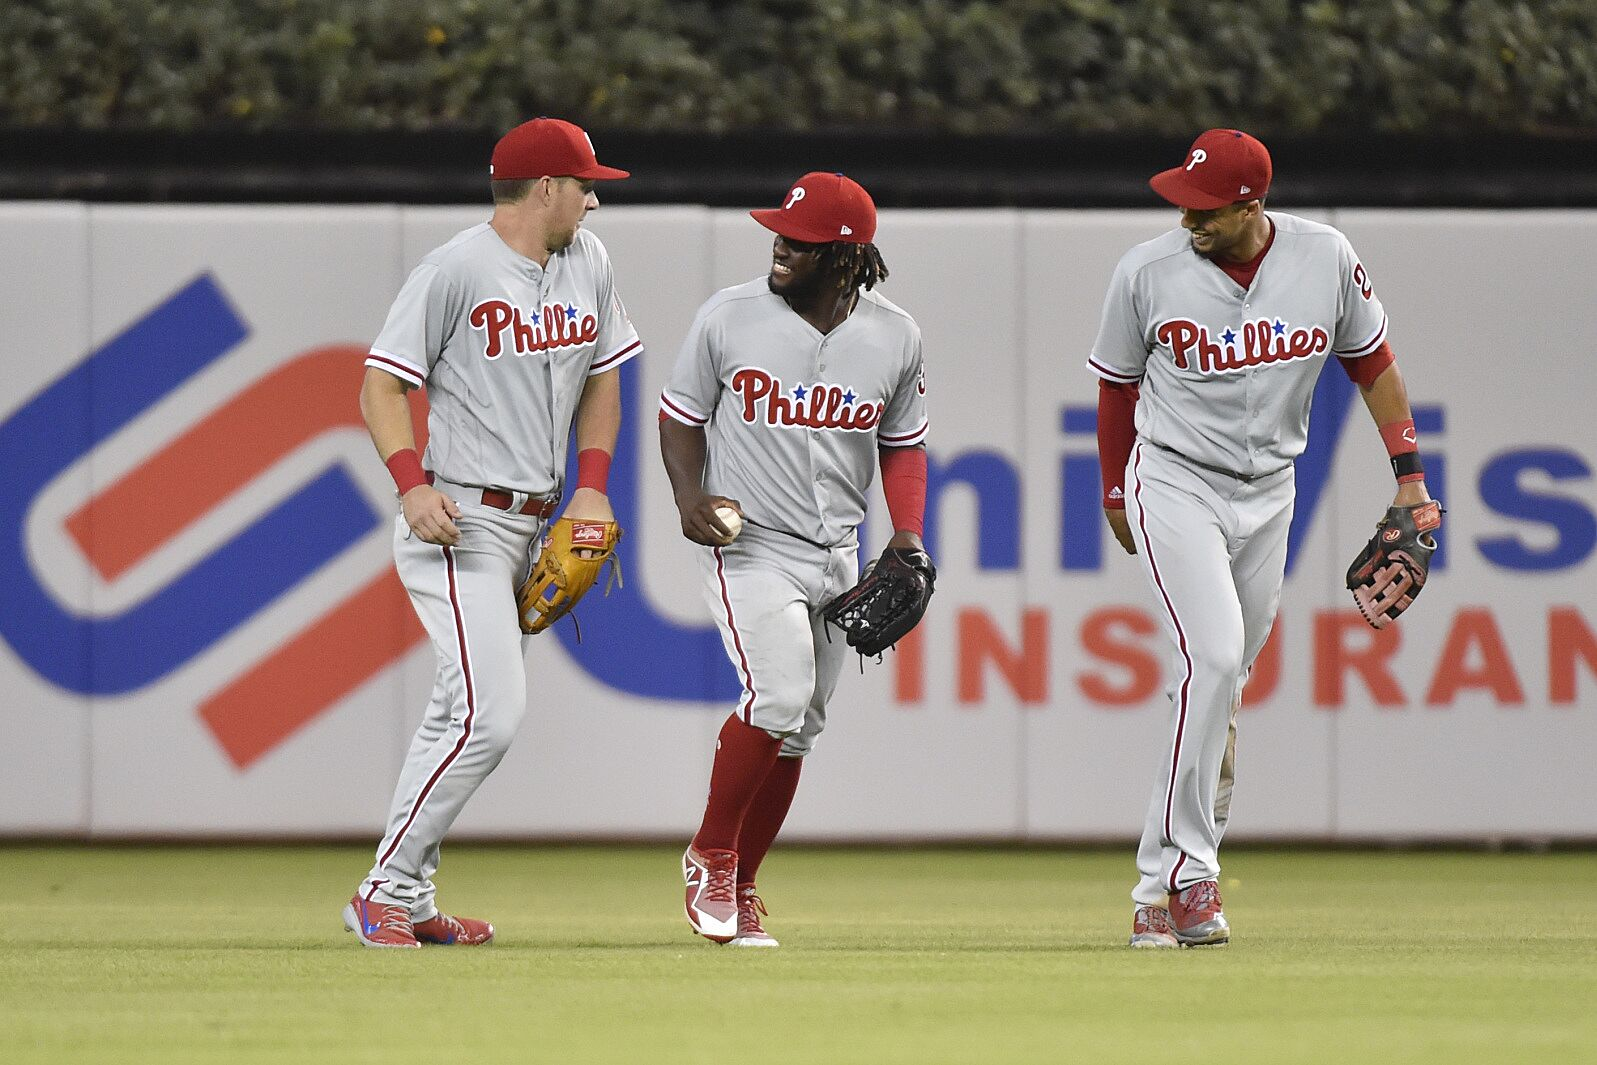 e4b33539d Five things we learned about the Phillies from the first half of 2018